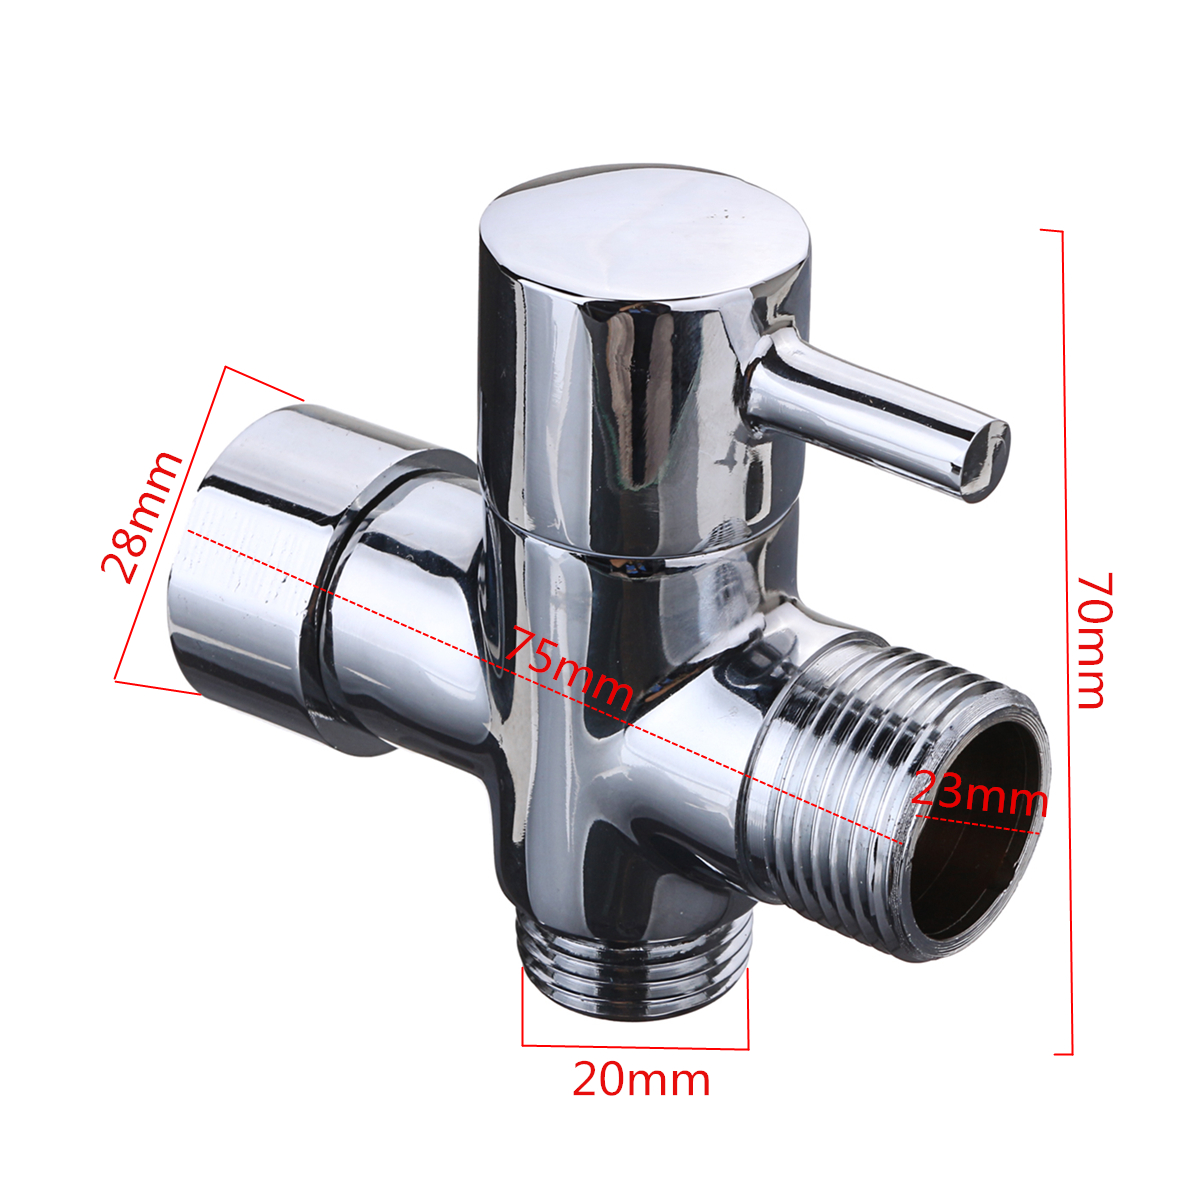 7/8 Inch T-Adapter 3 Way Connector Brass Shower Diverter with Valve for Toilet Bidet Handheld Sprayer